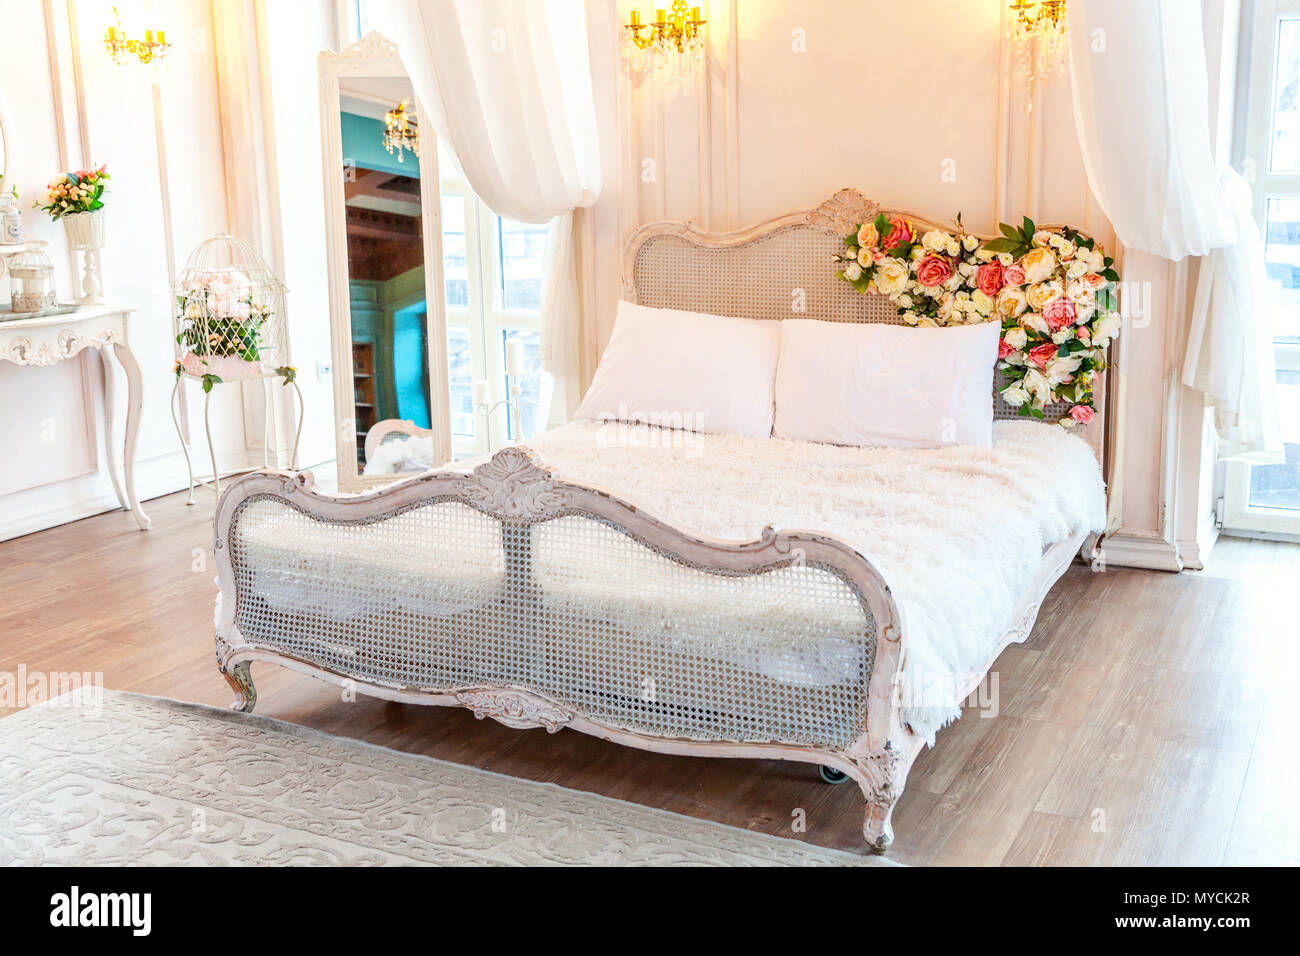 159c60cff4af7 Beautiful luxury classic white bright clean interior bedroom in baroque  style with king-size bed